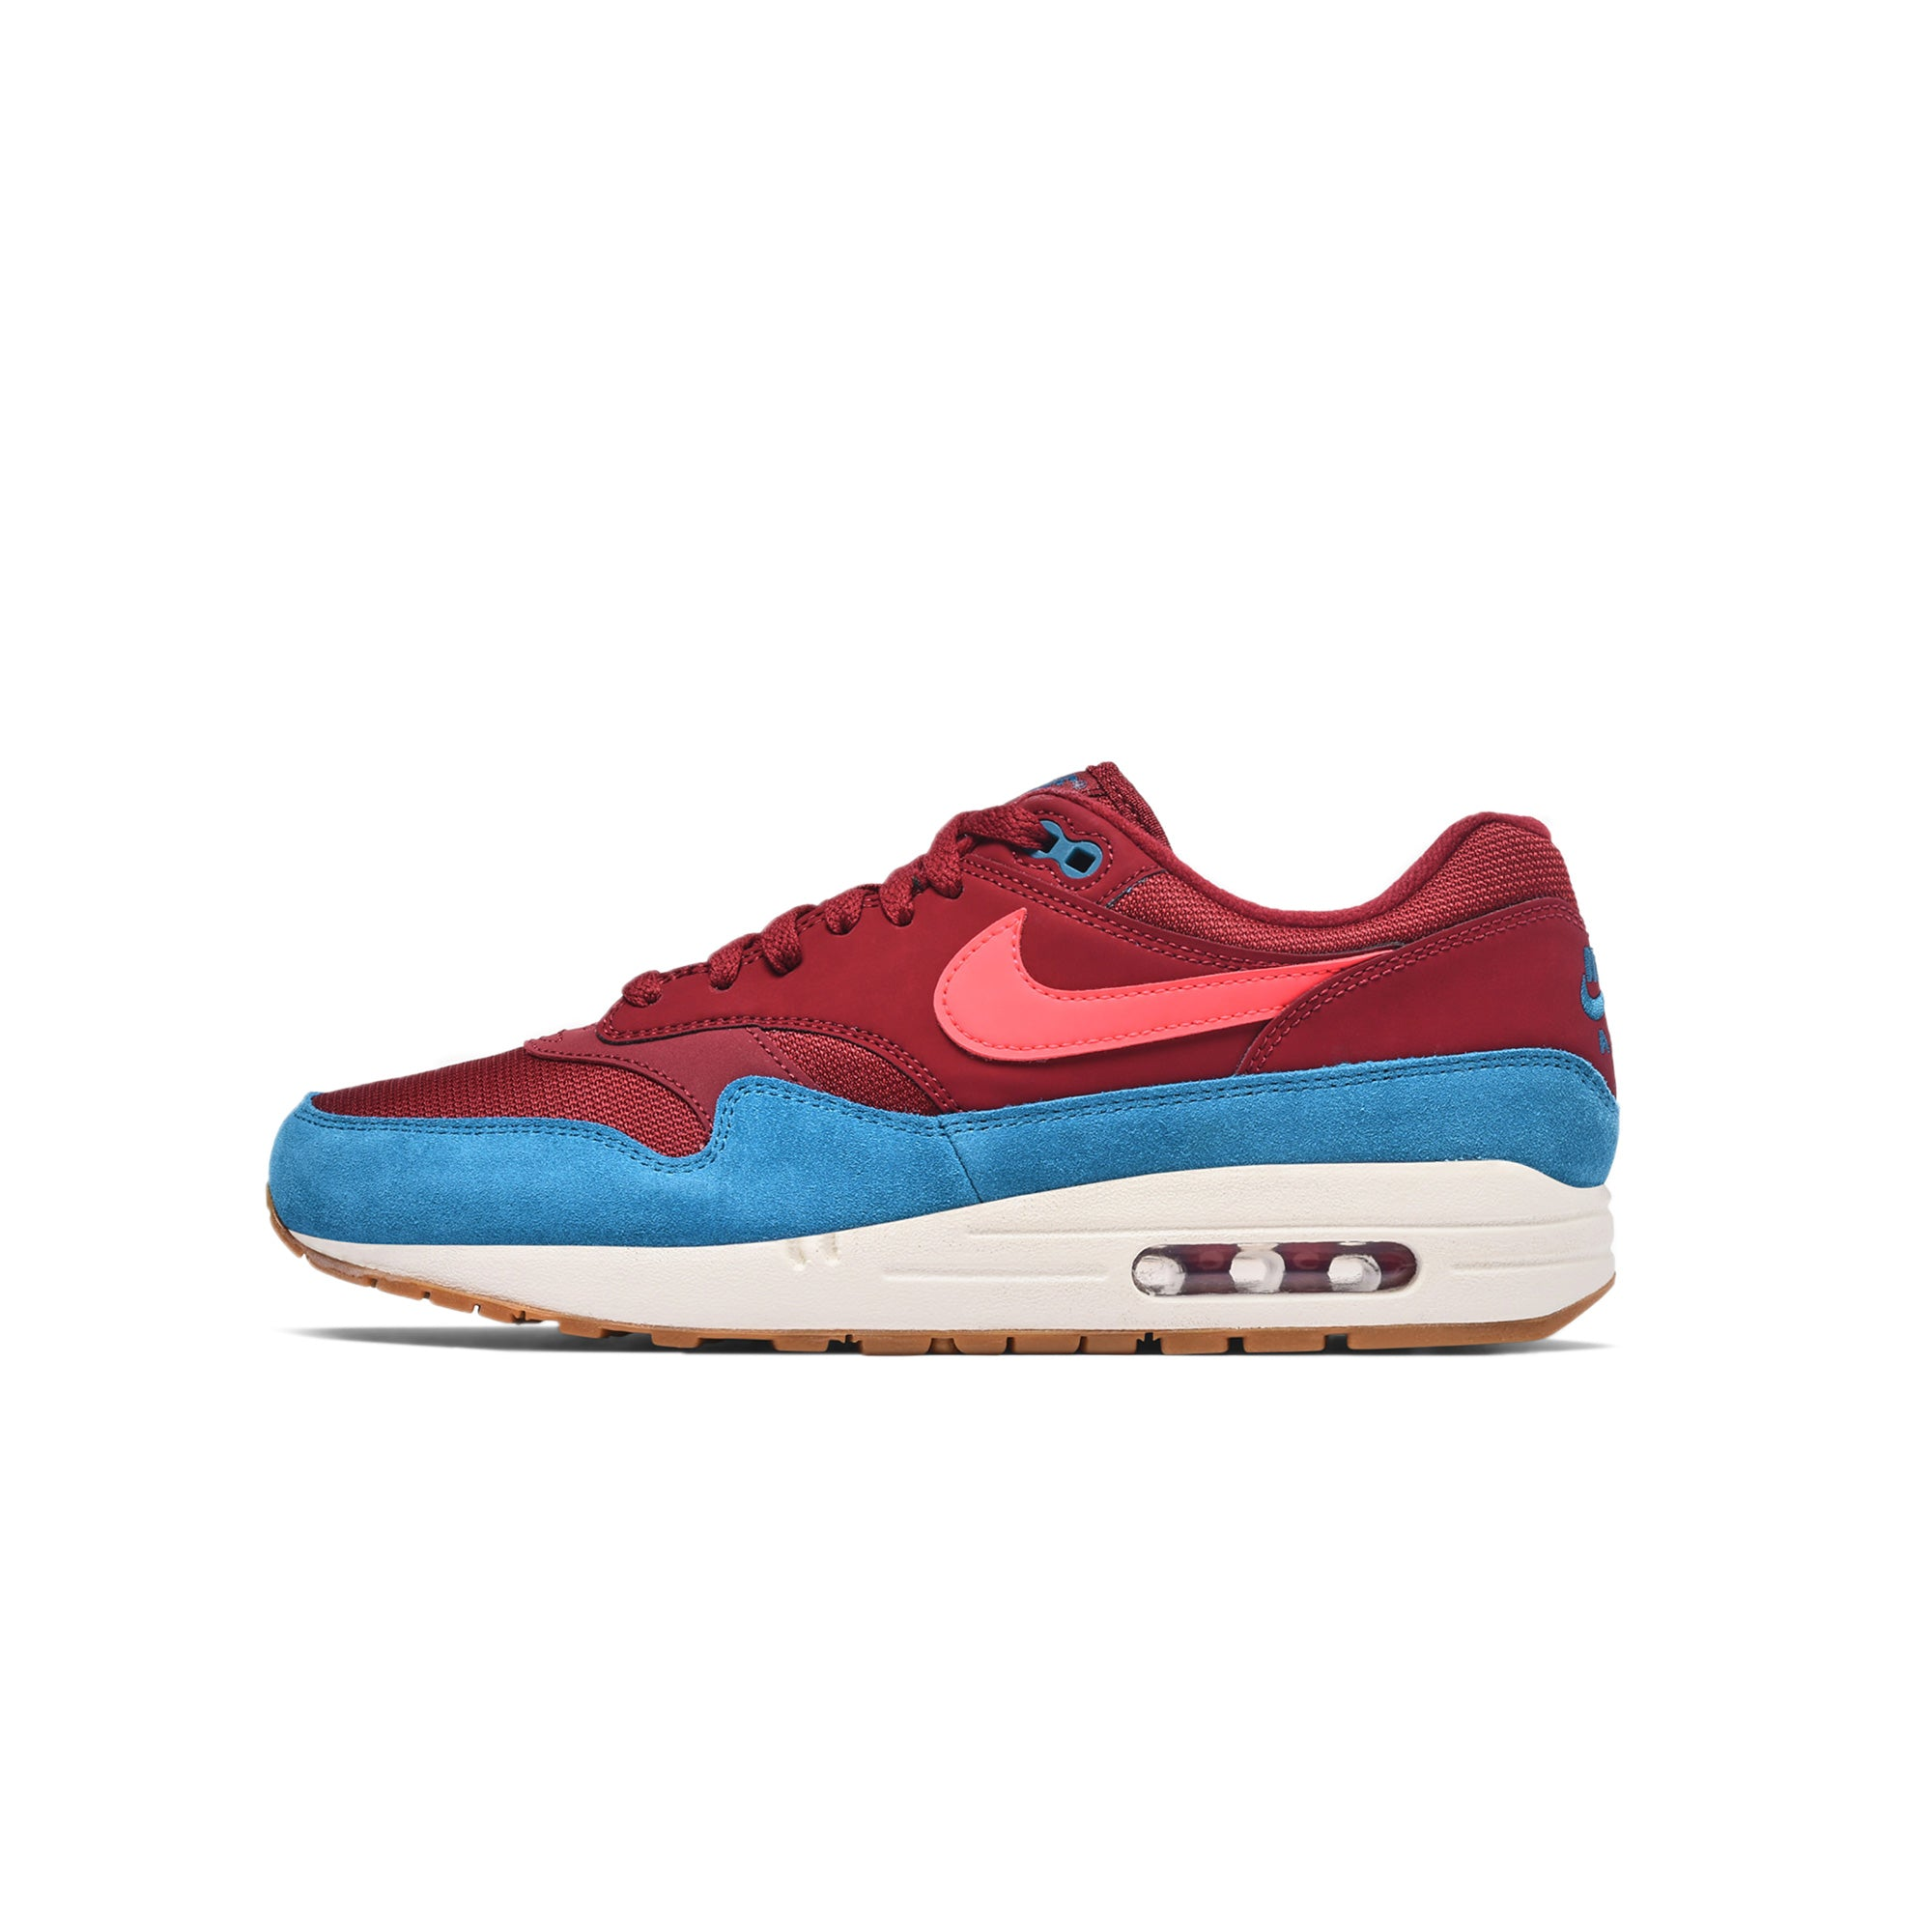 separation shoes 8c3b0 c4ec7 Nike Air Max 1  AH8145-601